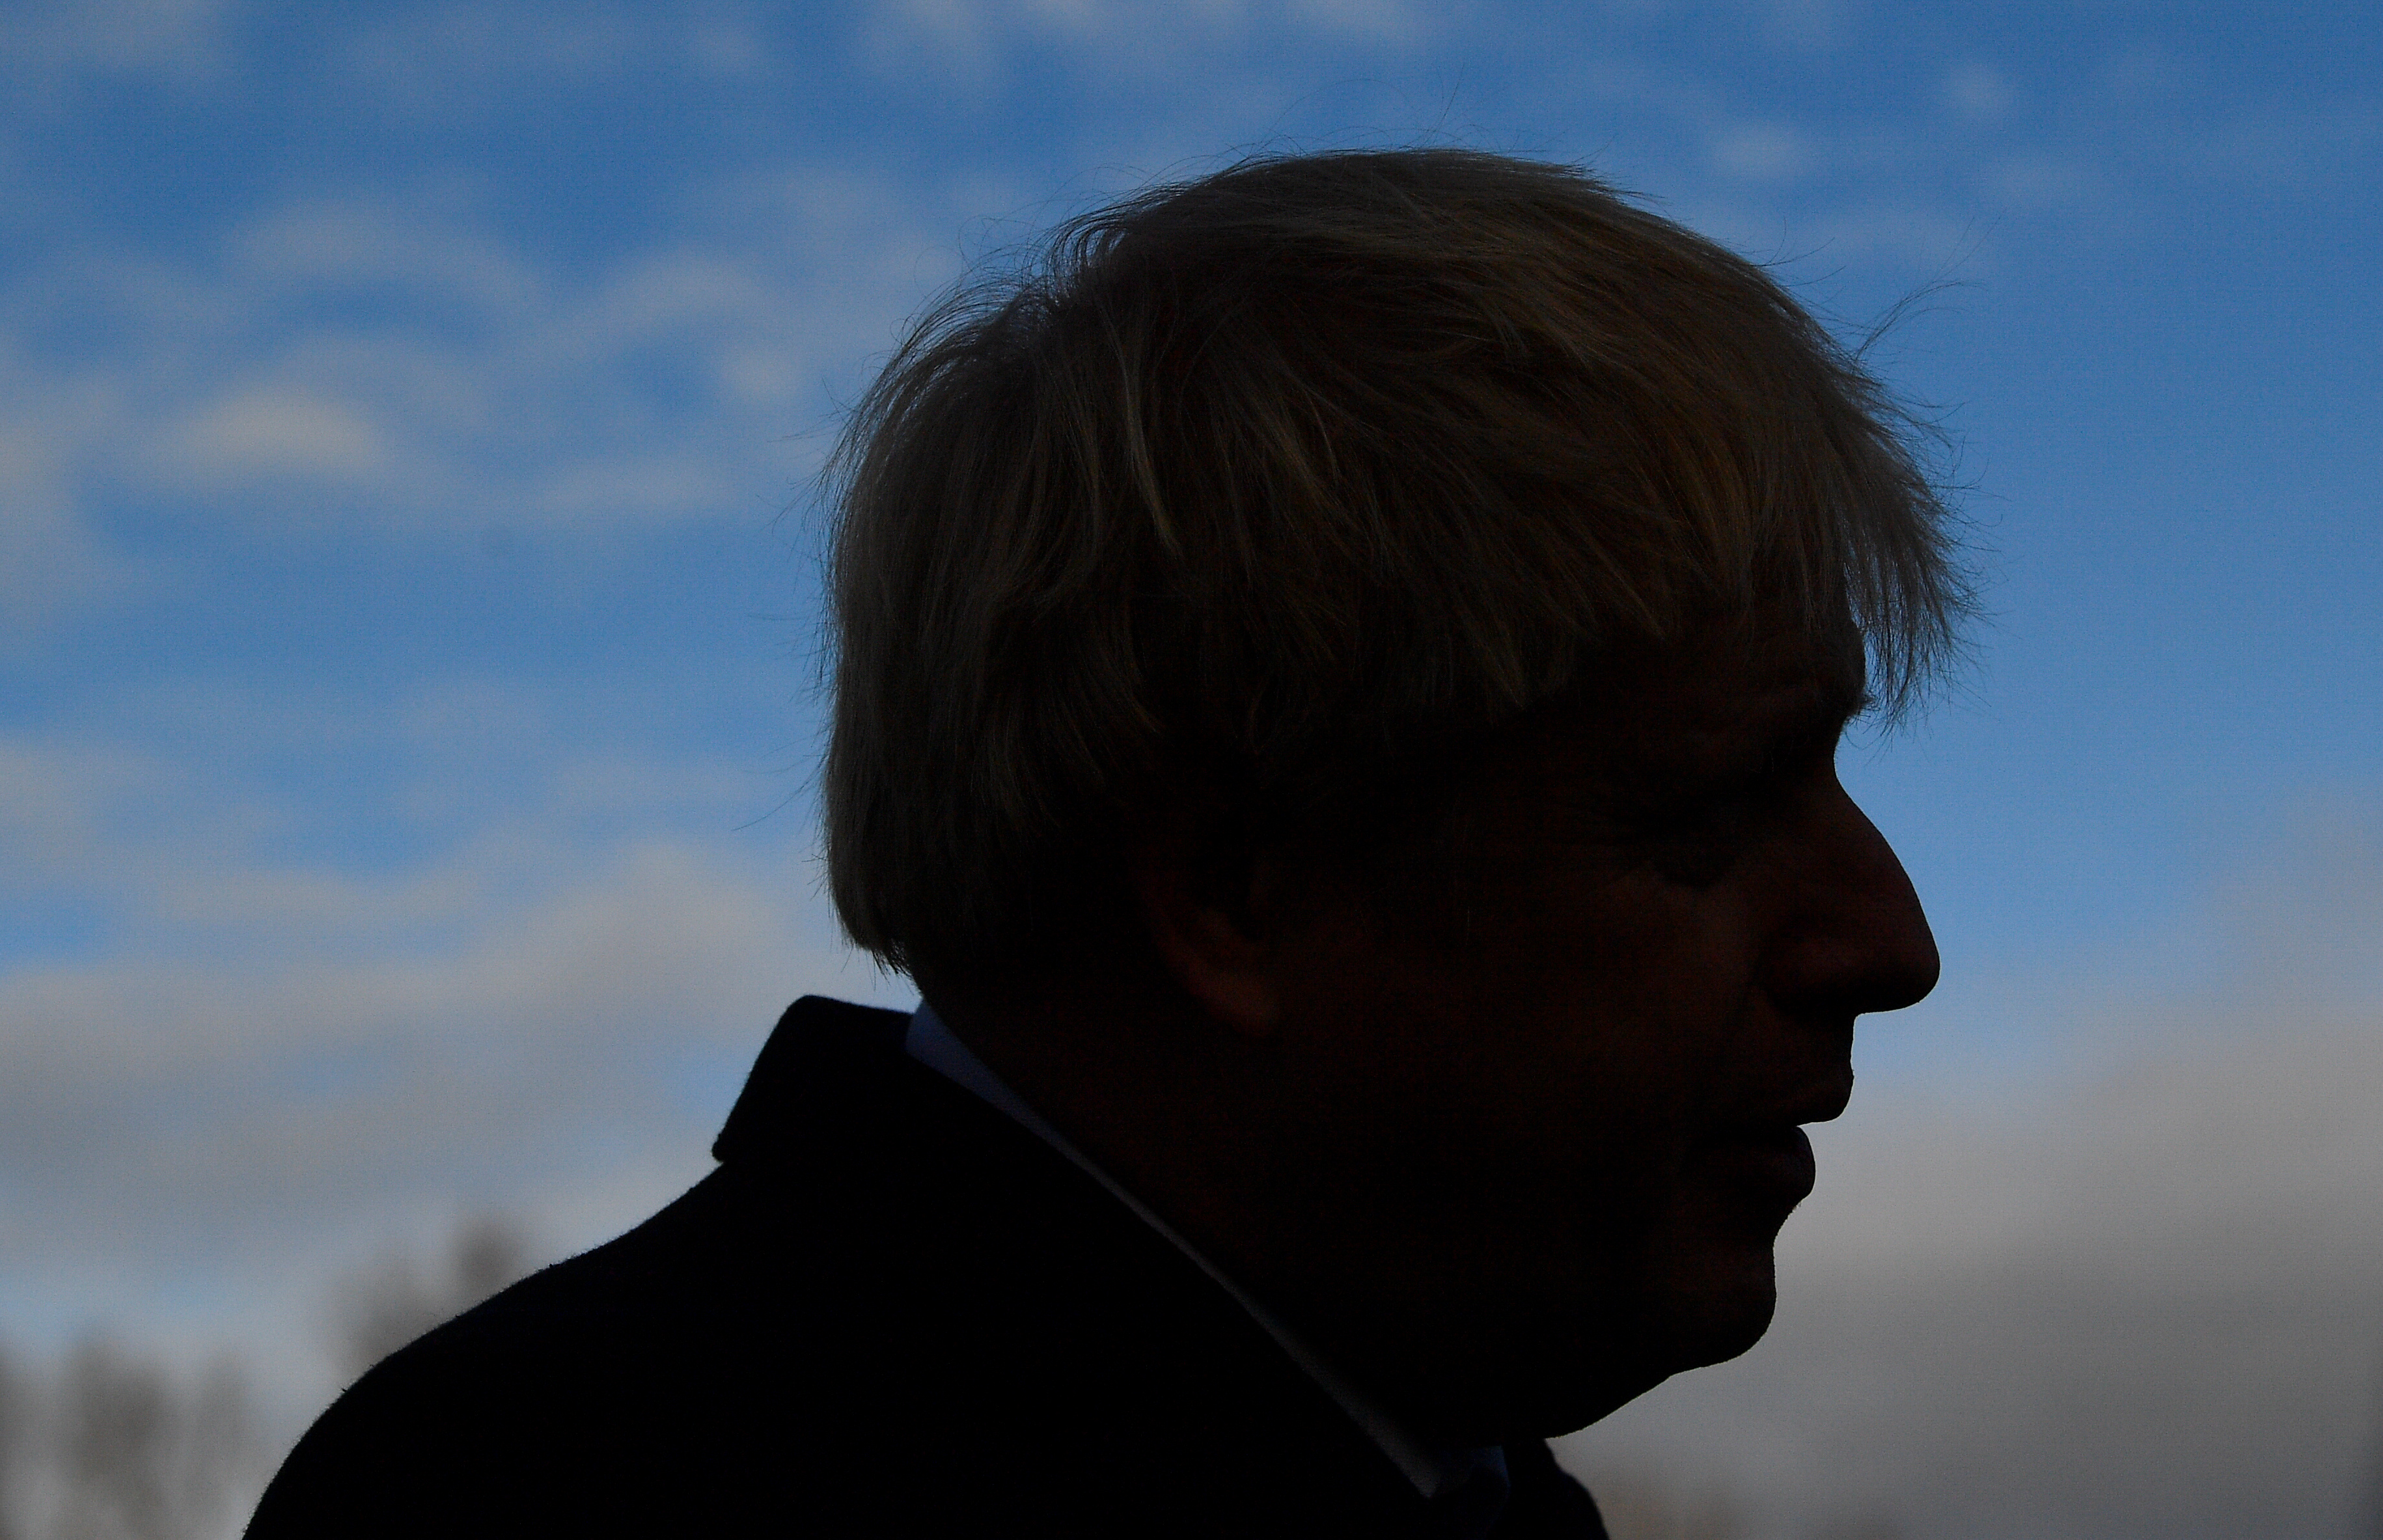 Boris Johnson Holds His Parliamentary Seat by Thinnest Margins in Decades